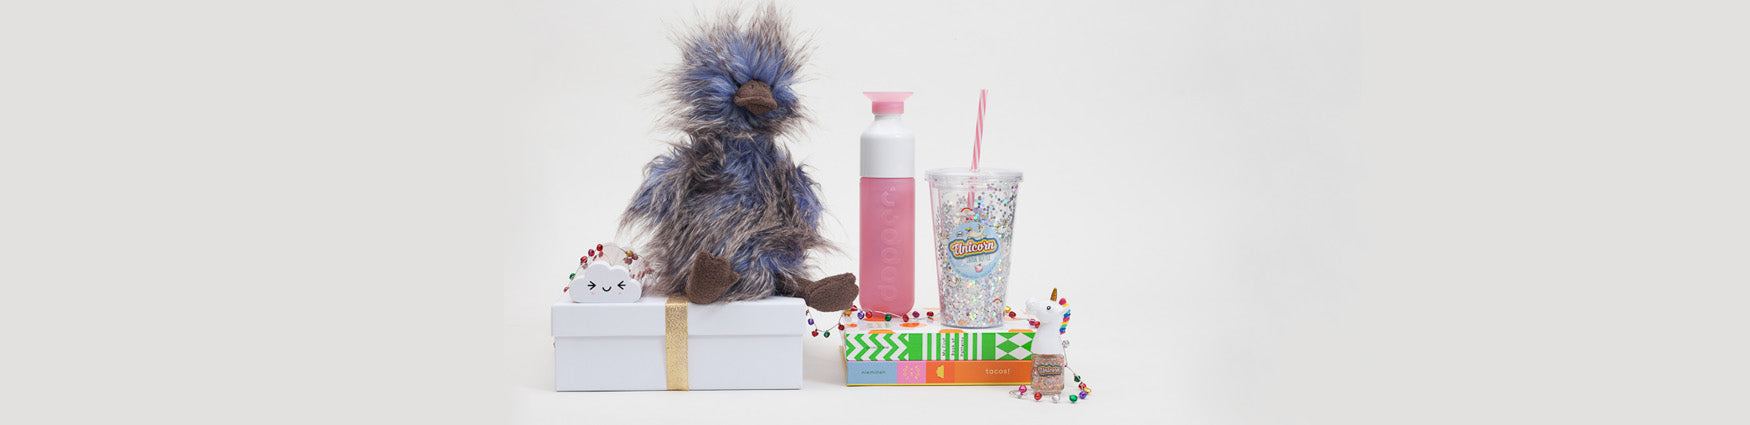 Christmas gift ideas for kids featuring Dopper drinking bottles and Jellycat soft toys available from Roo's Beach